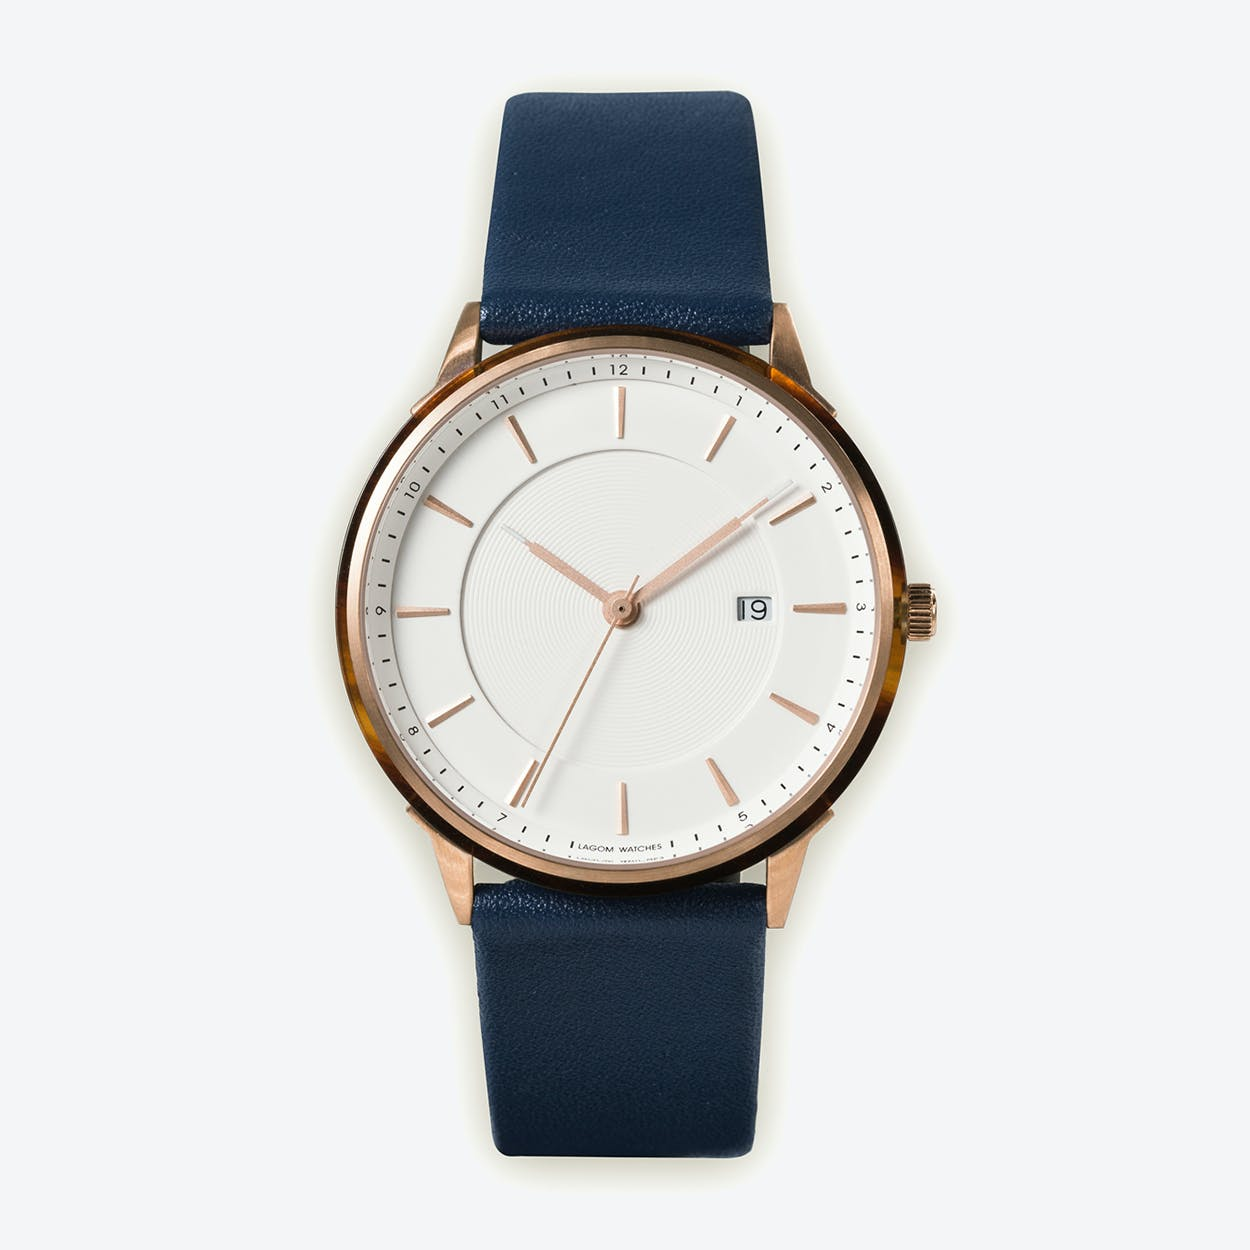 BÖRJA - Rose Gold Watch in Offwhite Face and Navy Blue Leather Strap